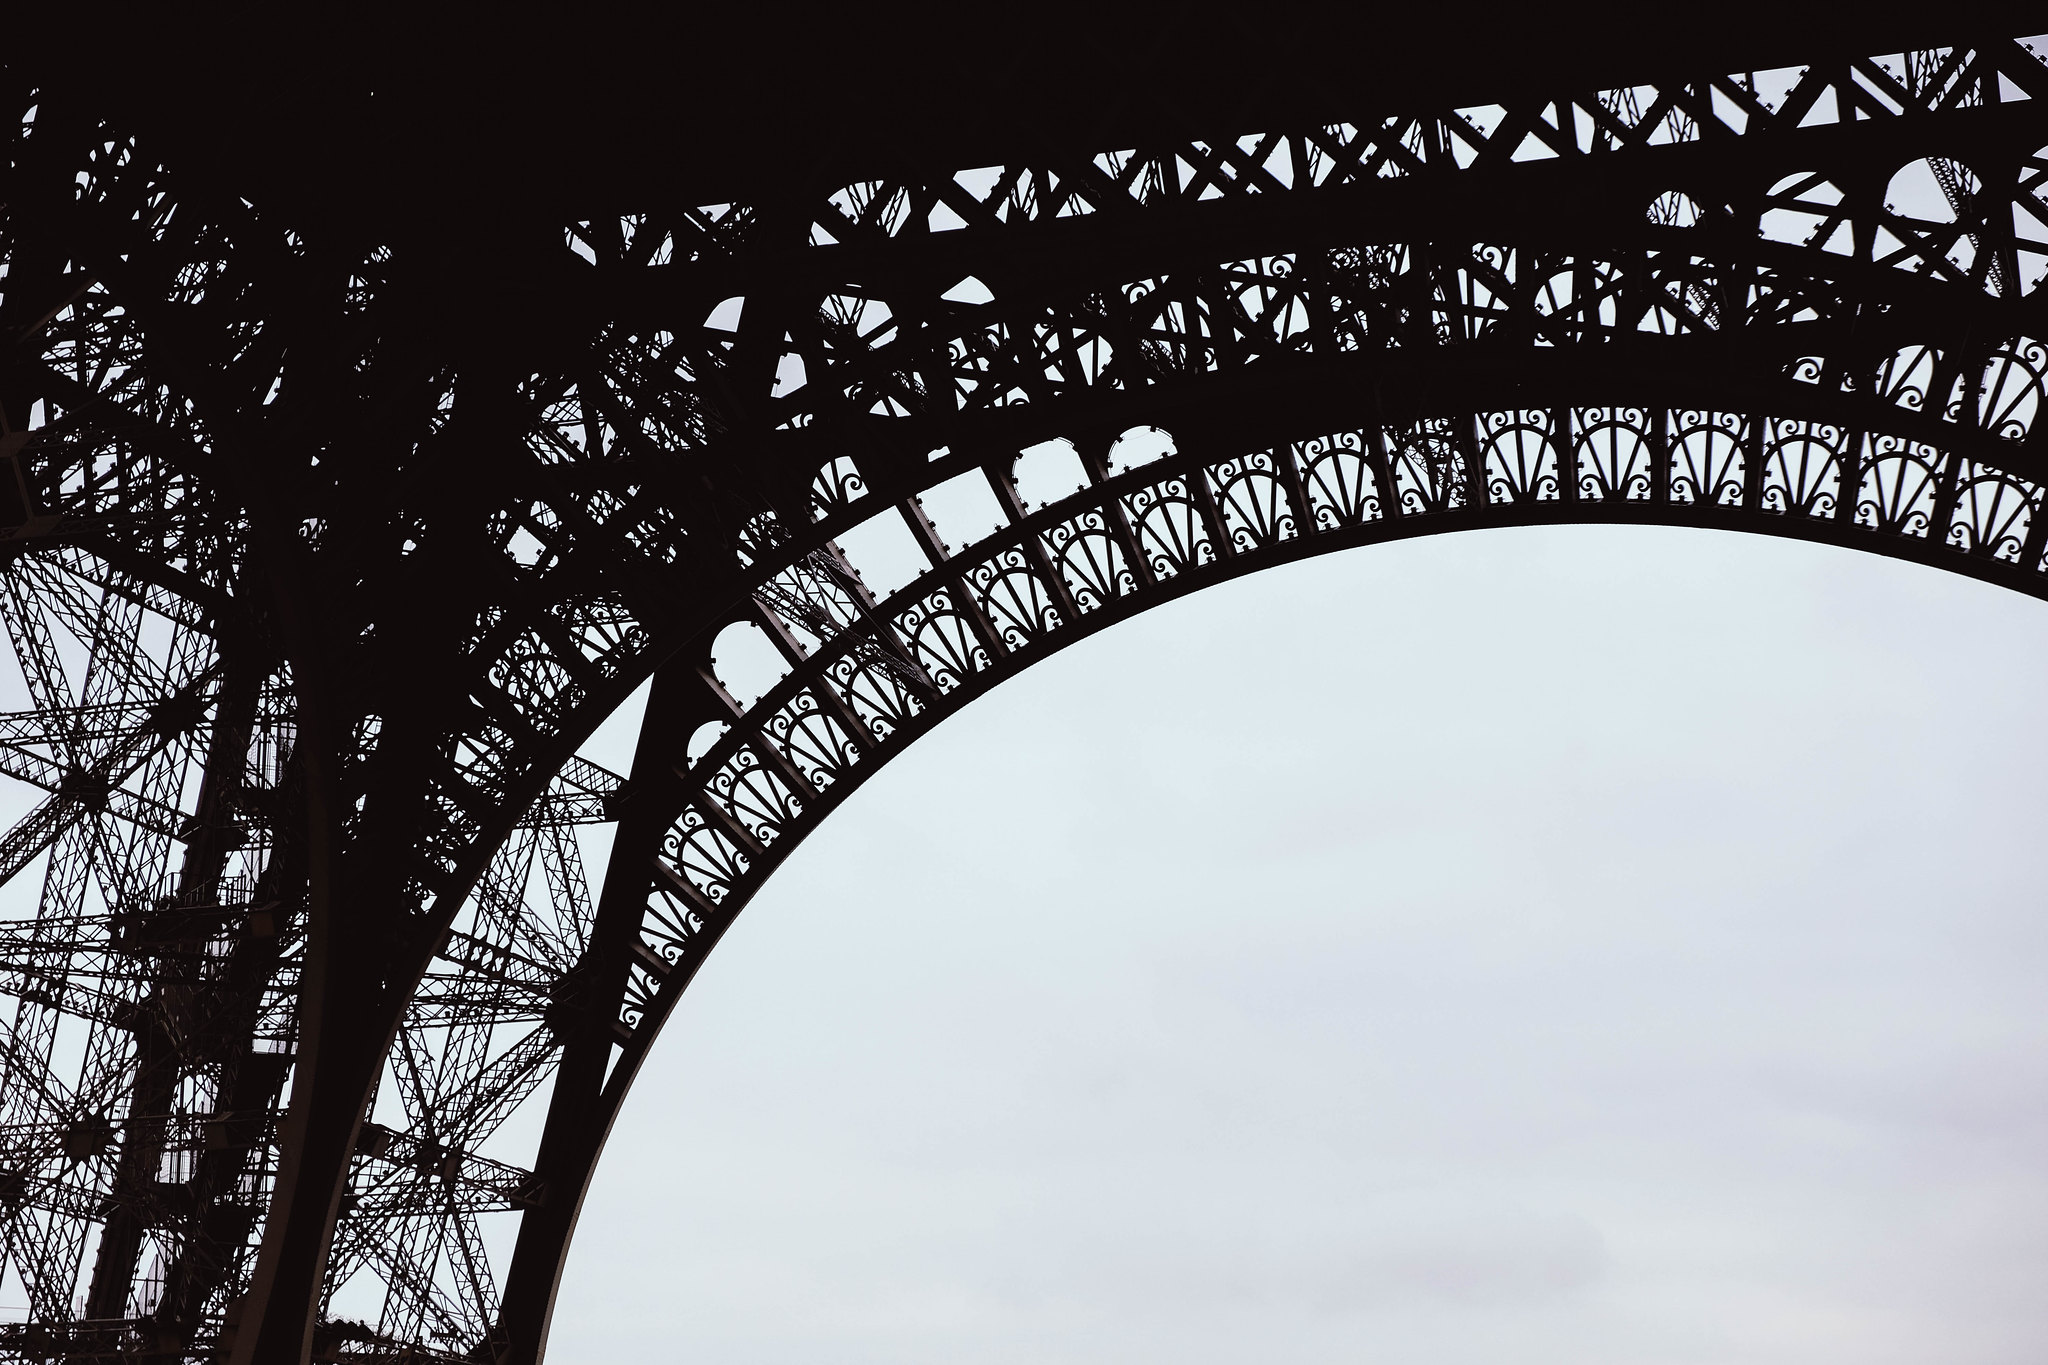 Another artistic Eiffel Tower shot